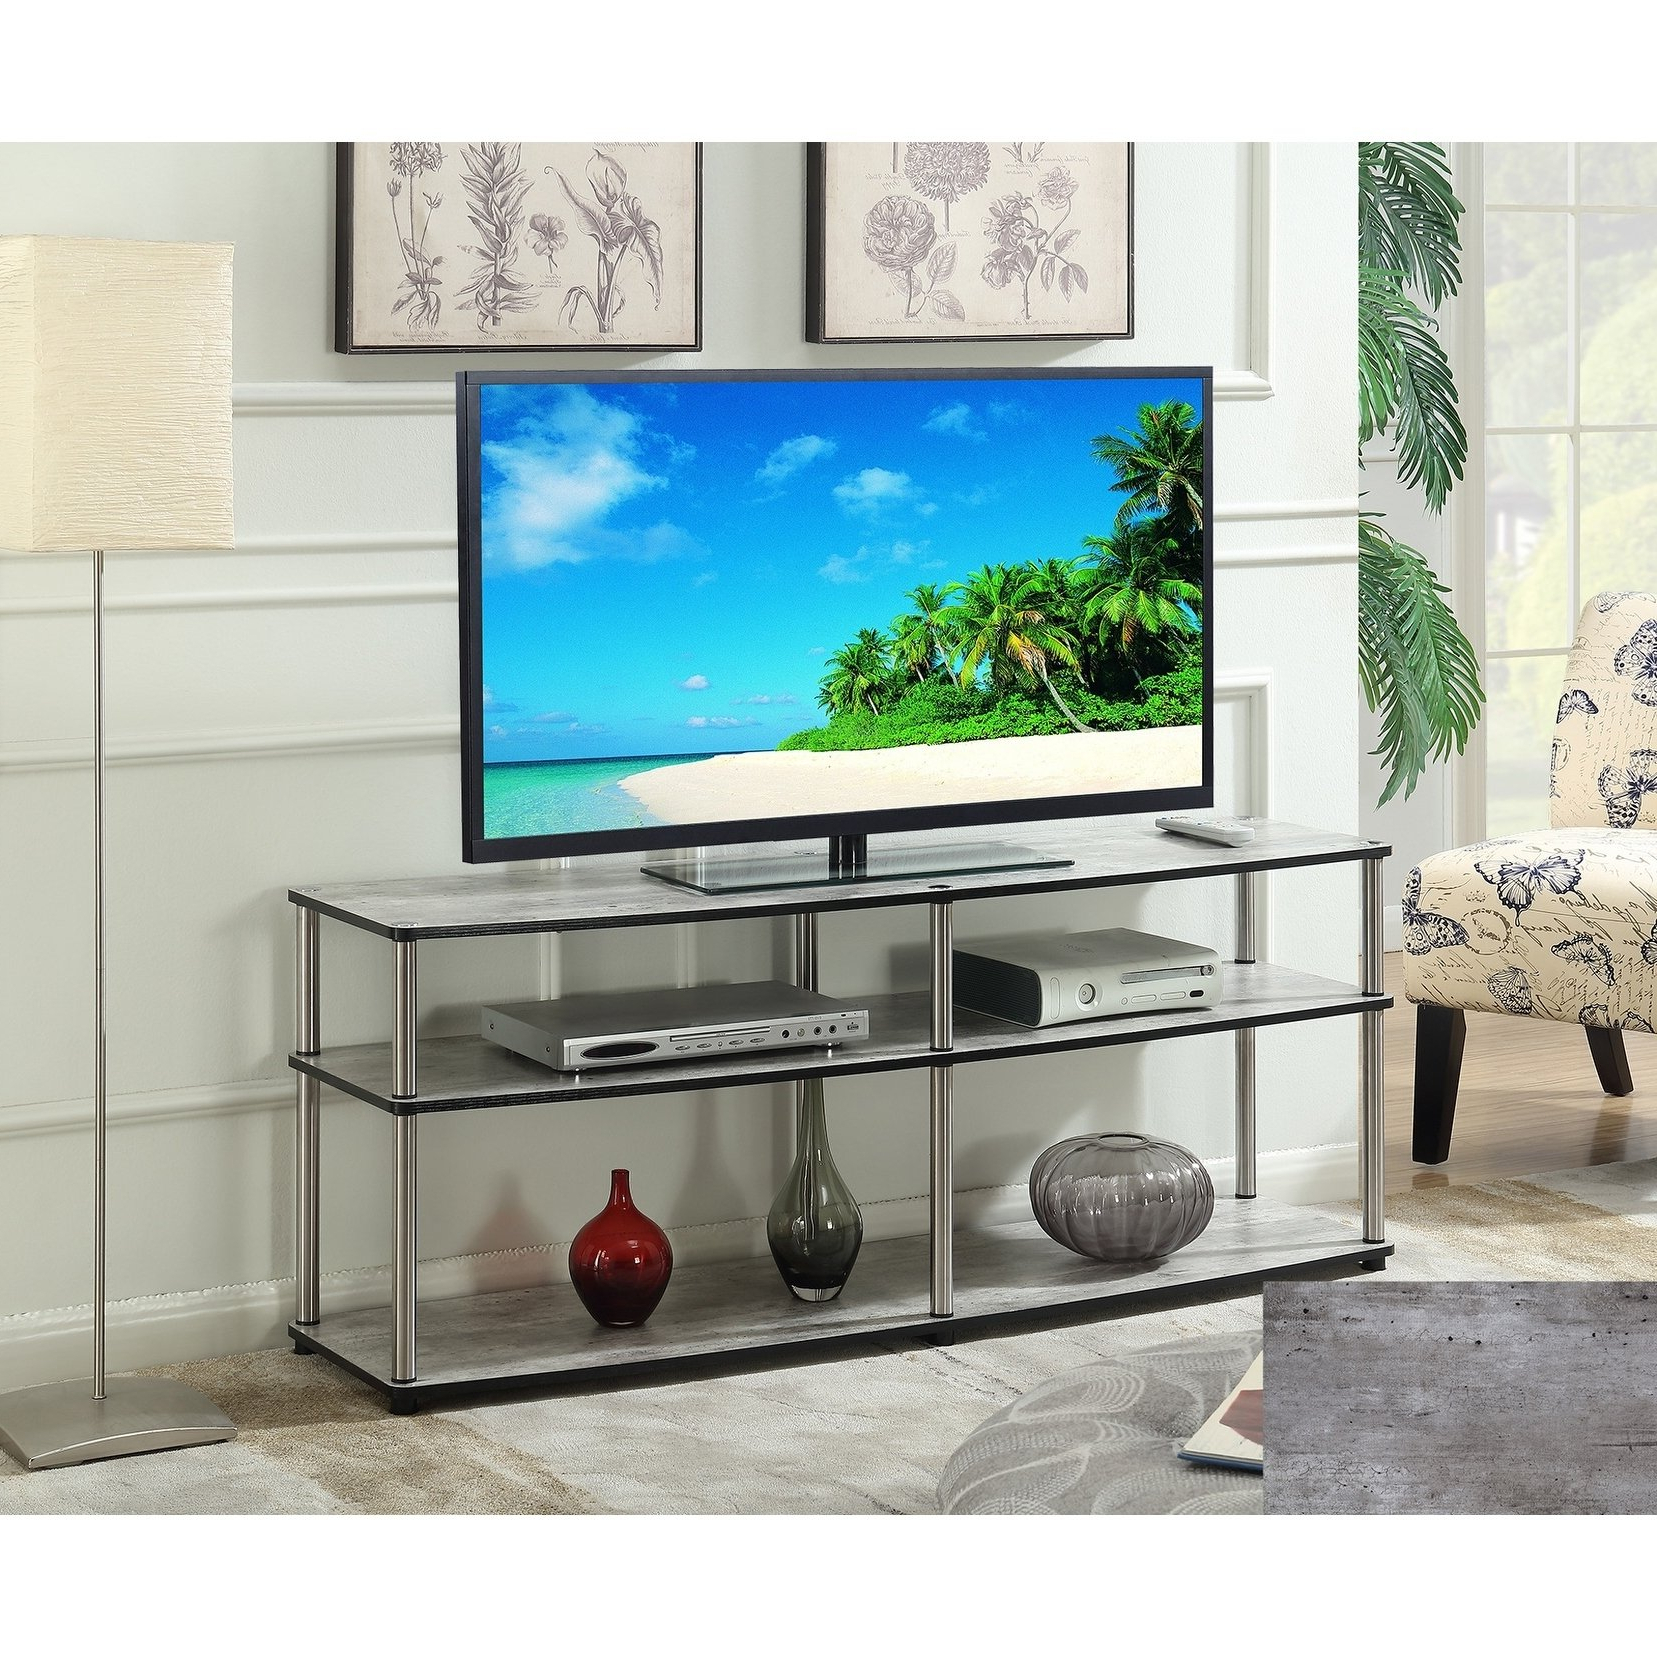 Famous 3 Tv Stands & Entertainment Centers For Less (View 4 of 20)